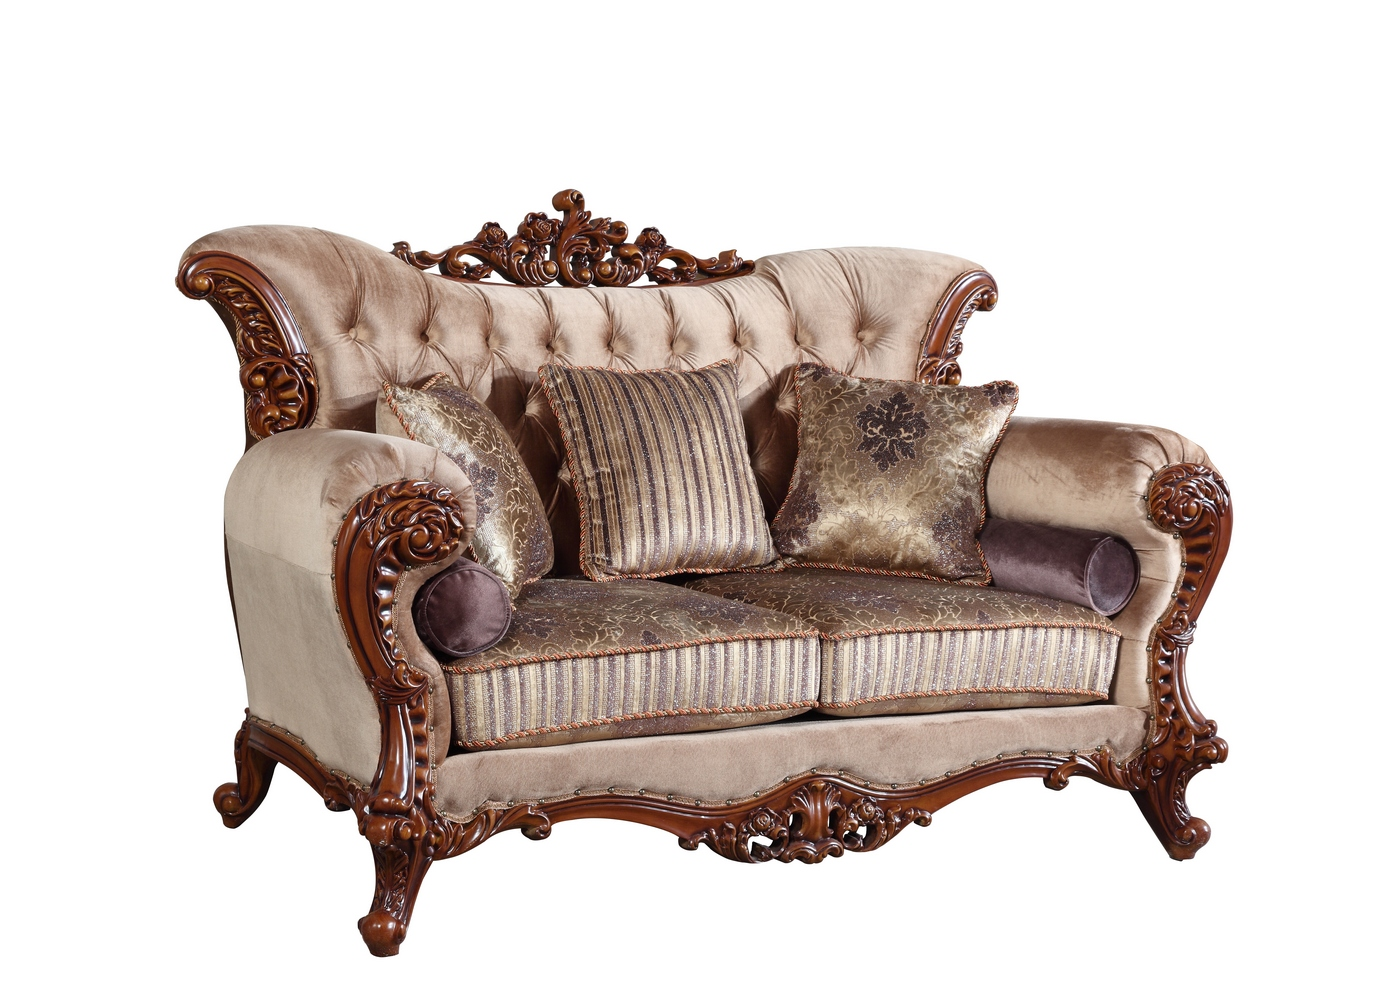 Bordeaux carved wood beige tufted sofa loveseat set with